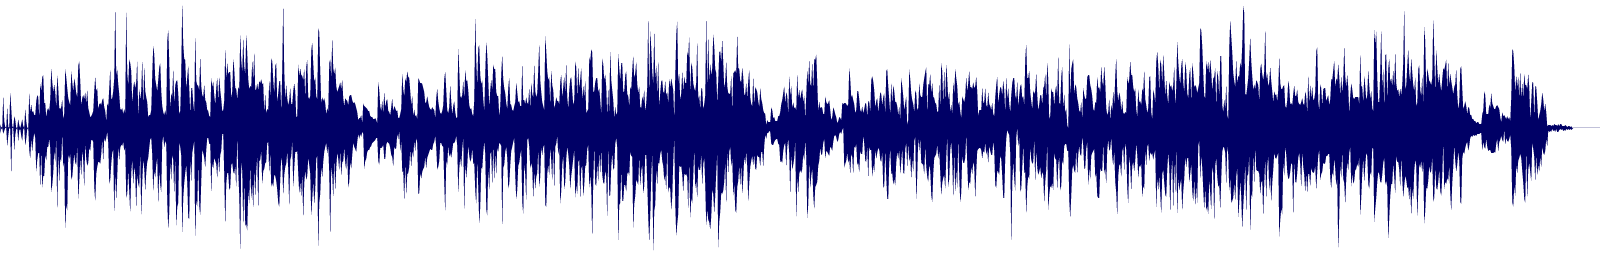 waveform of track #149274